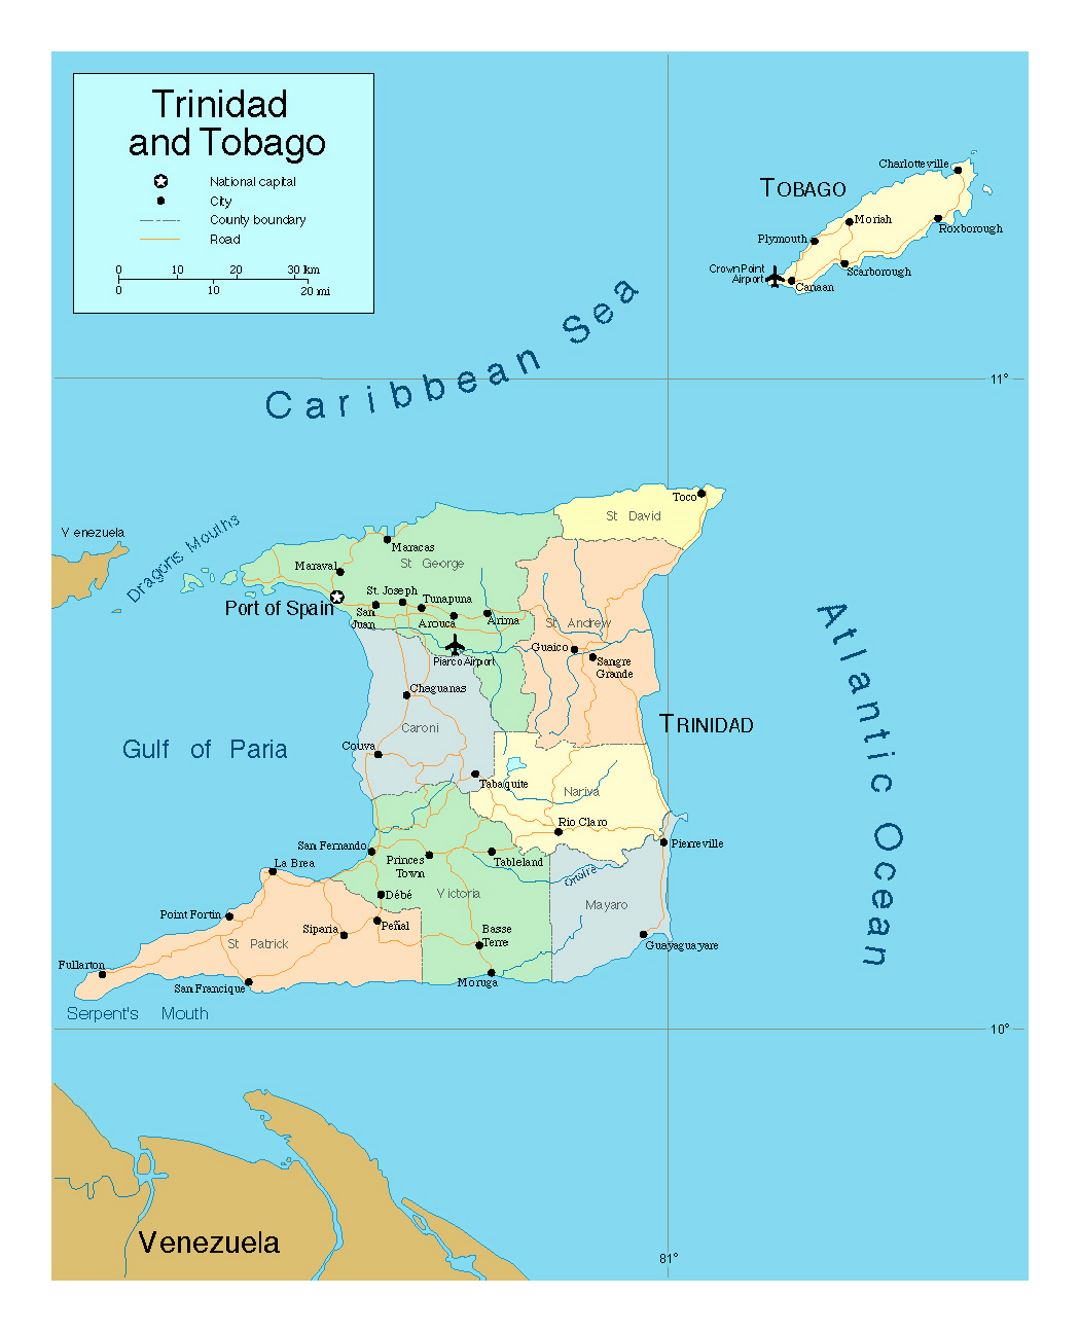 Detailed political and administrative map of Trinidad and Tobago